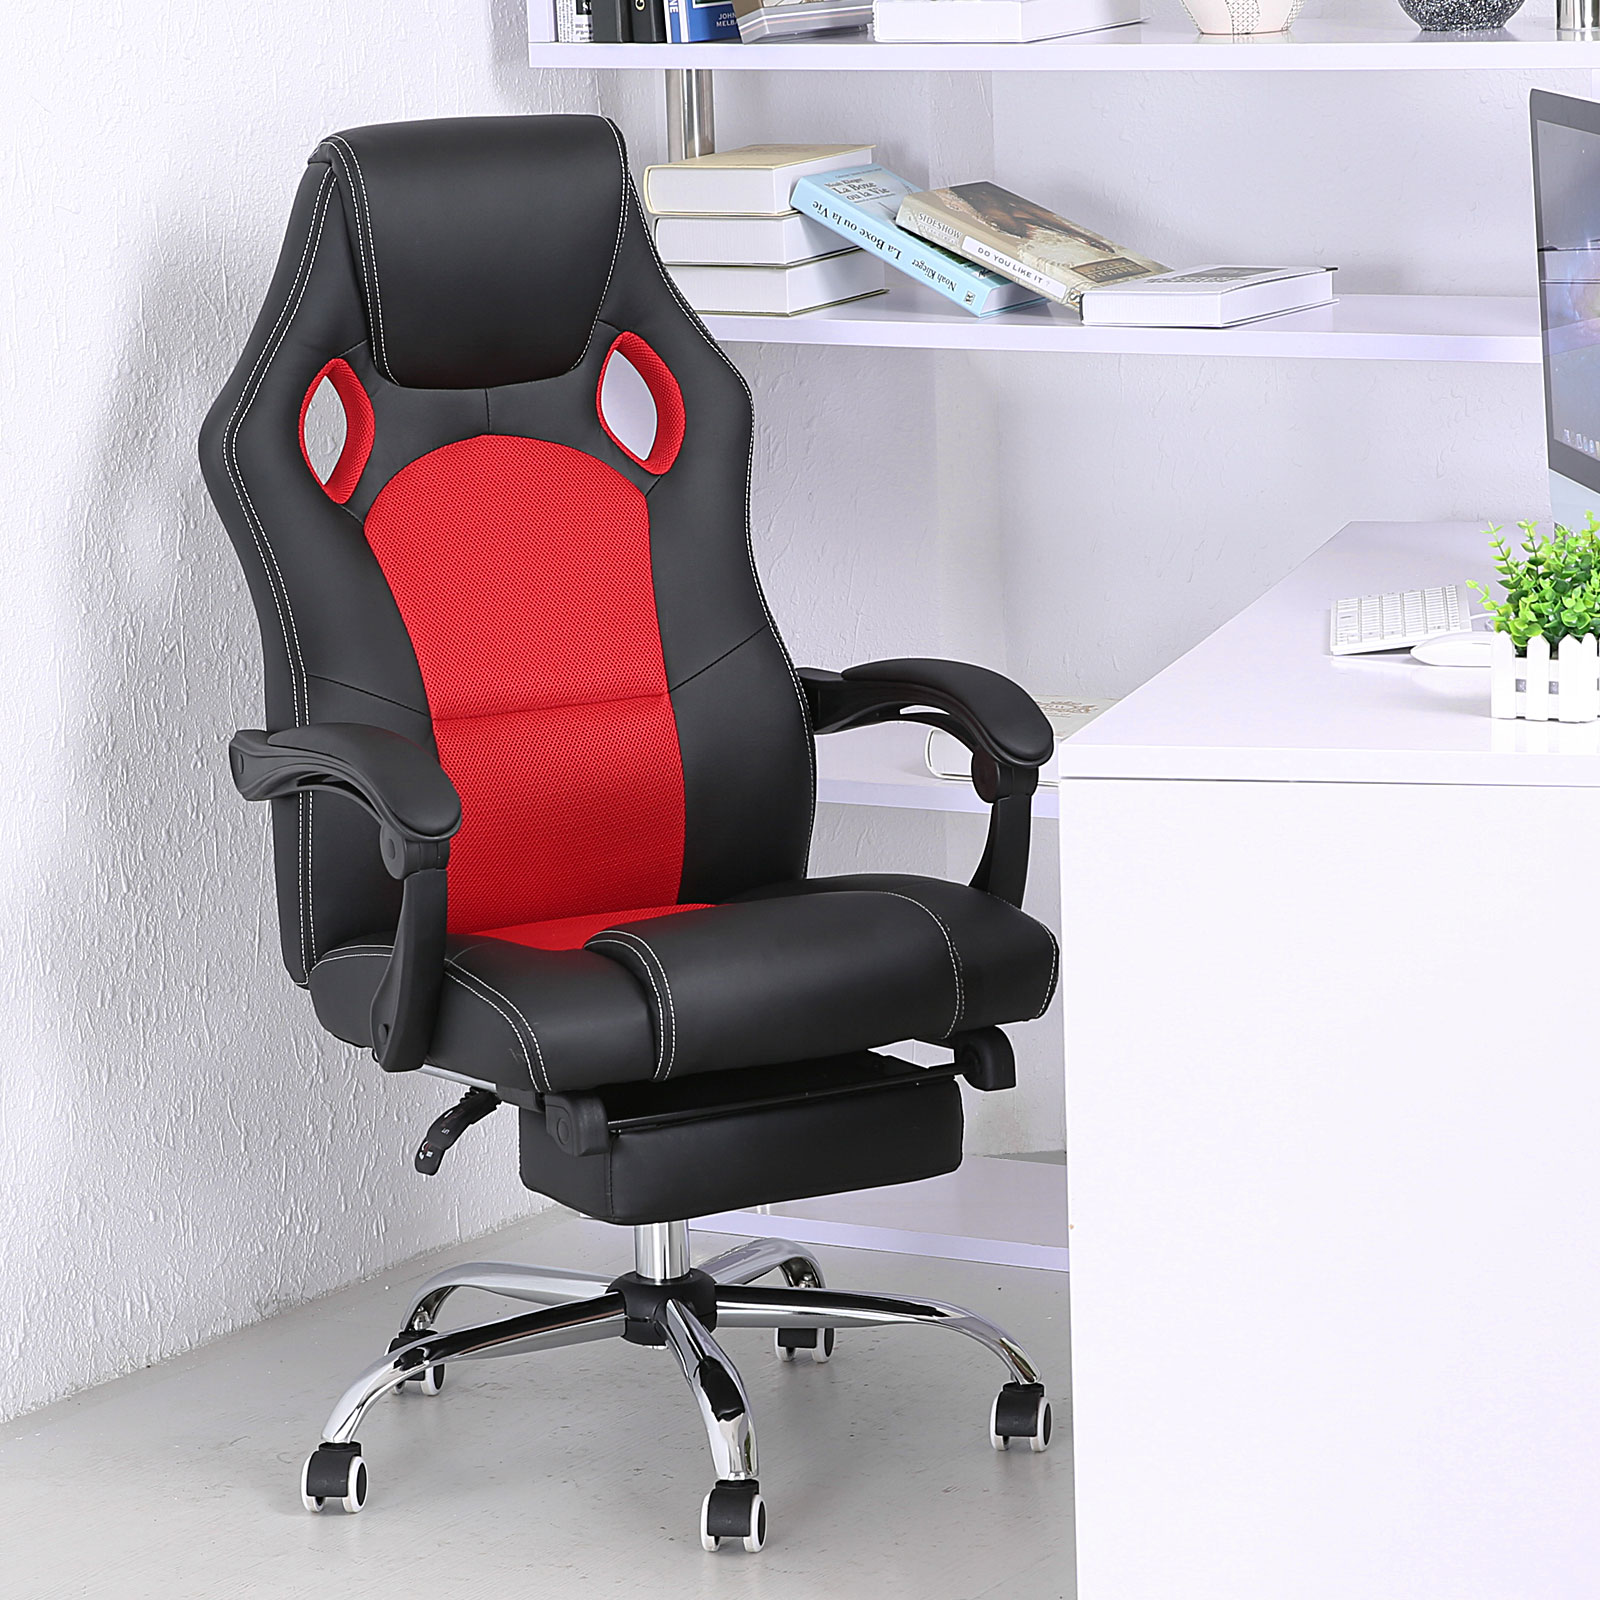 gaming chair with footrest reviews executive office ergonomic high back reclining